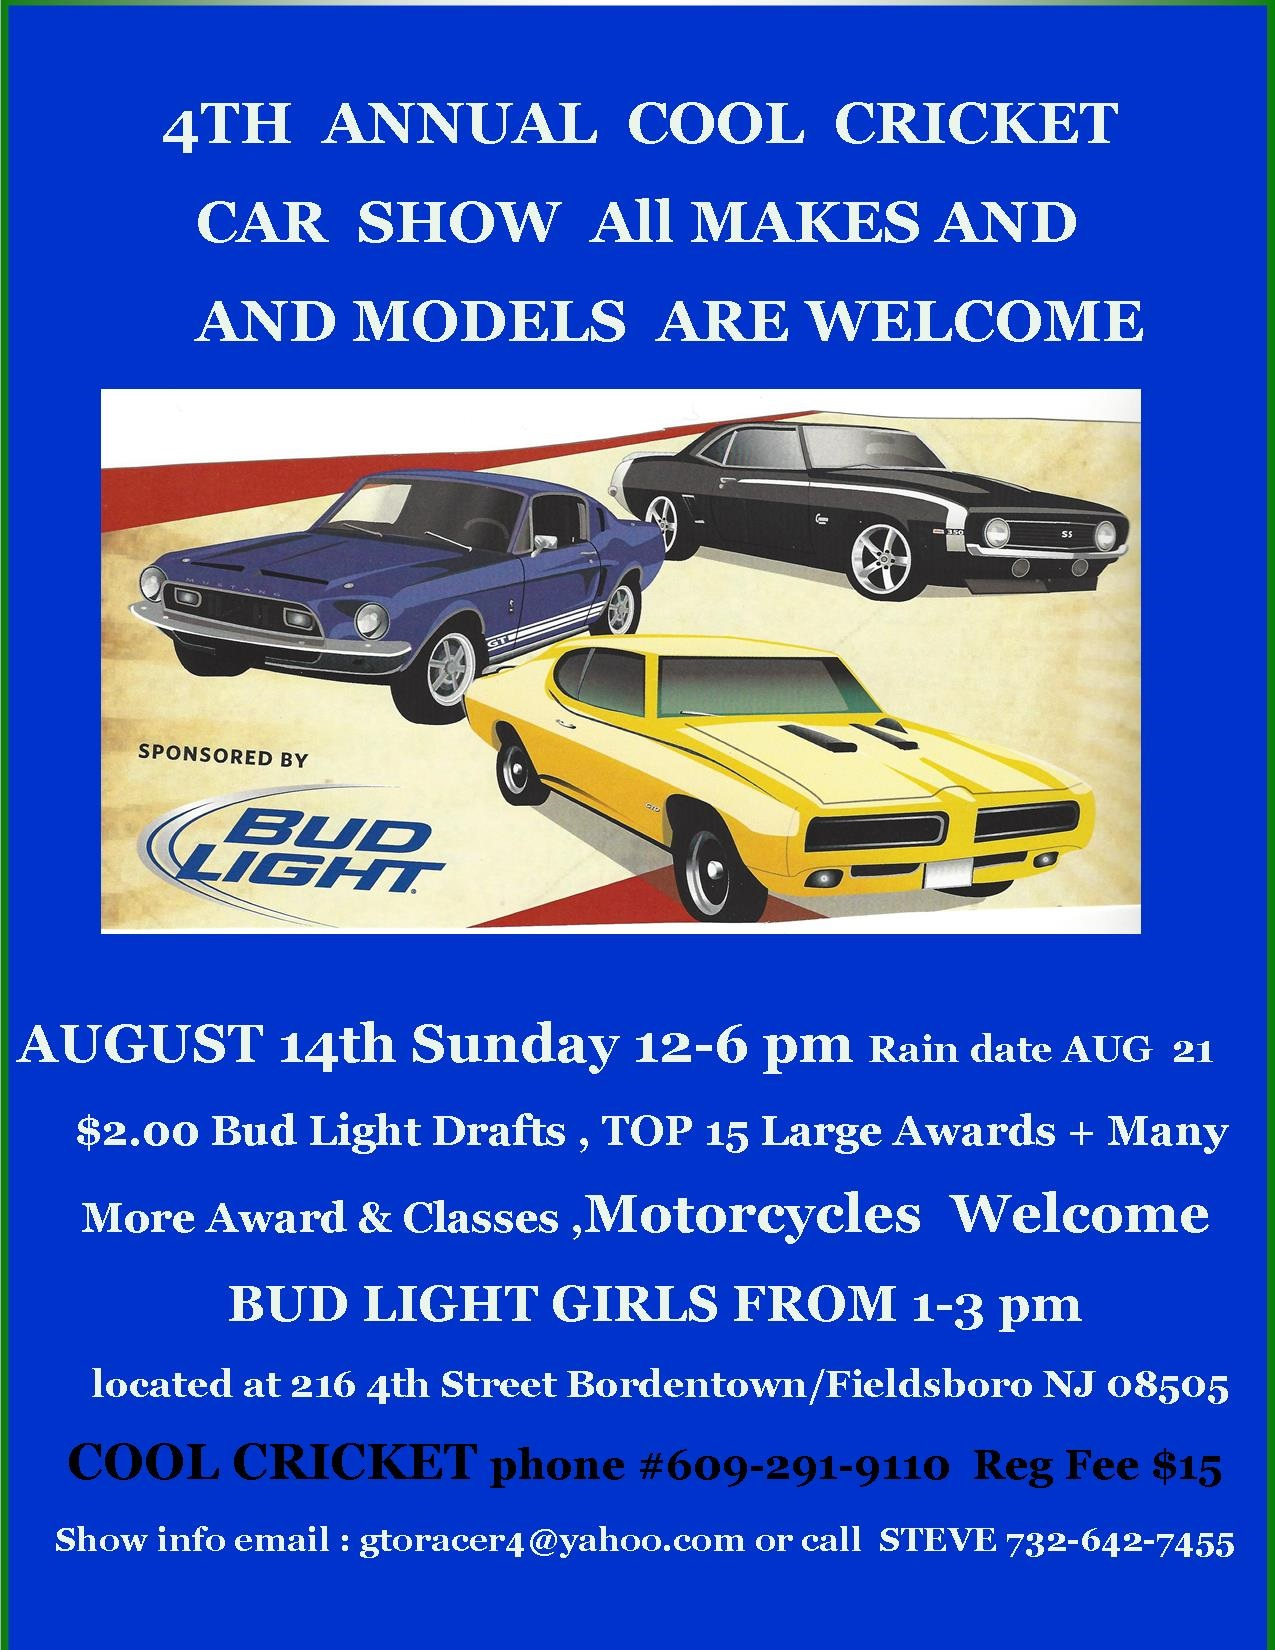 Th ANNUAL COOL CRICKET CAR BIKE SHOW AUGUST Th LSGTOcom Forums - Fun car show award categories